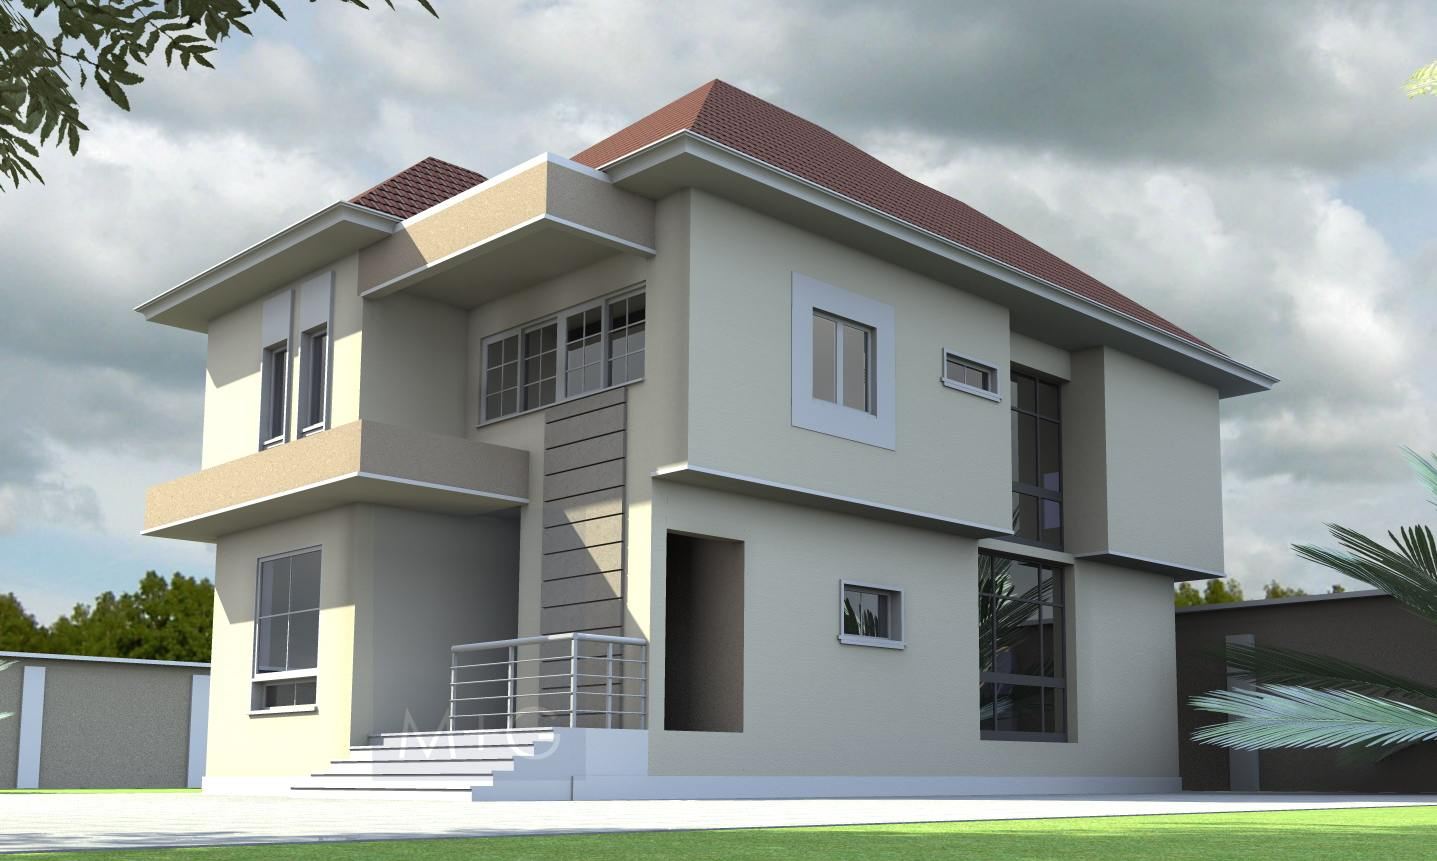 House plans and design architectural designs for for Residential architecture design